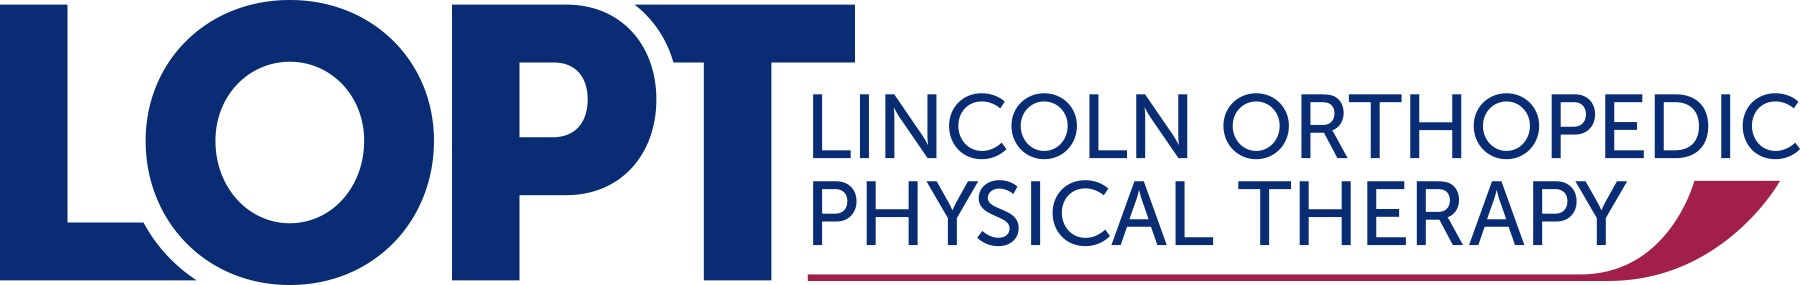 Hole Sponsor - Lincoln Orthopedic Physical Therapy - Logo